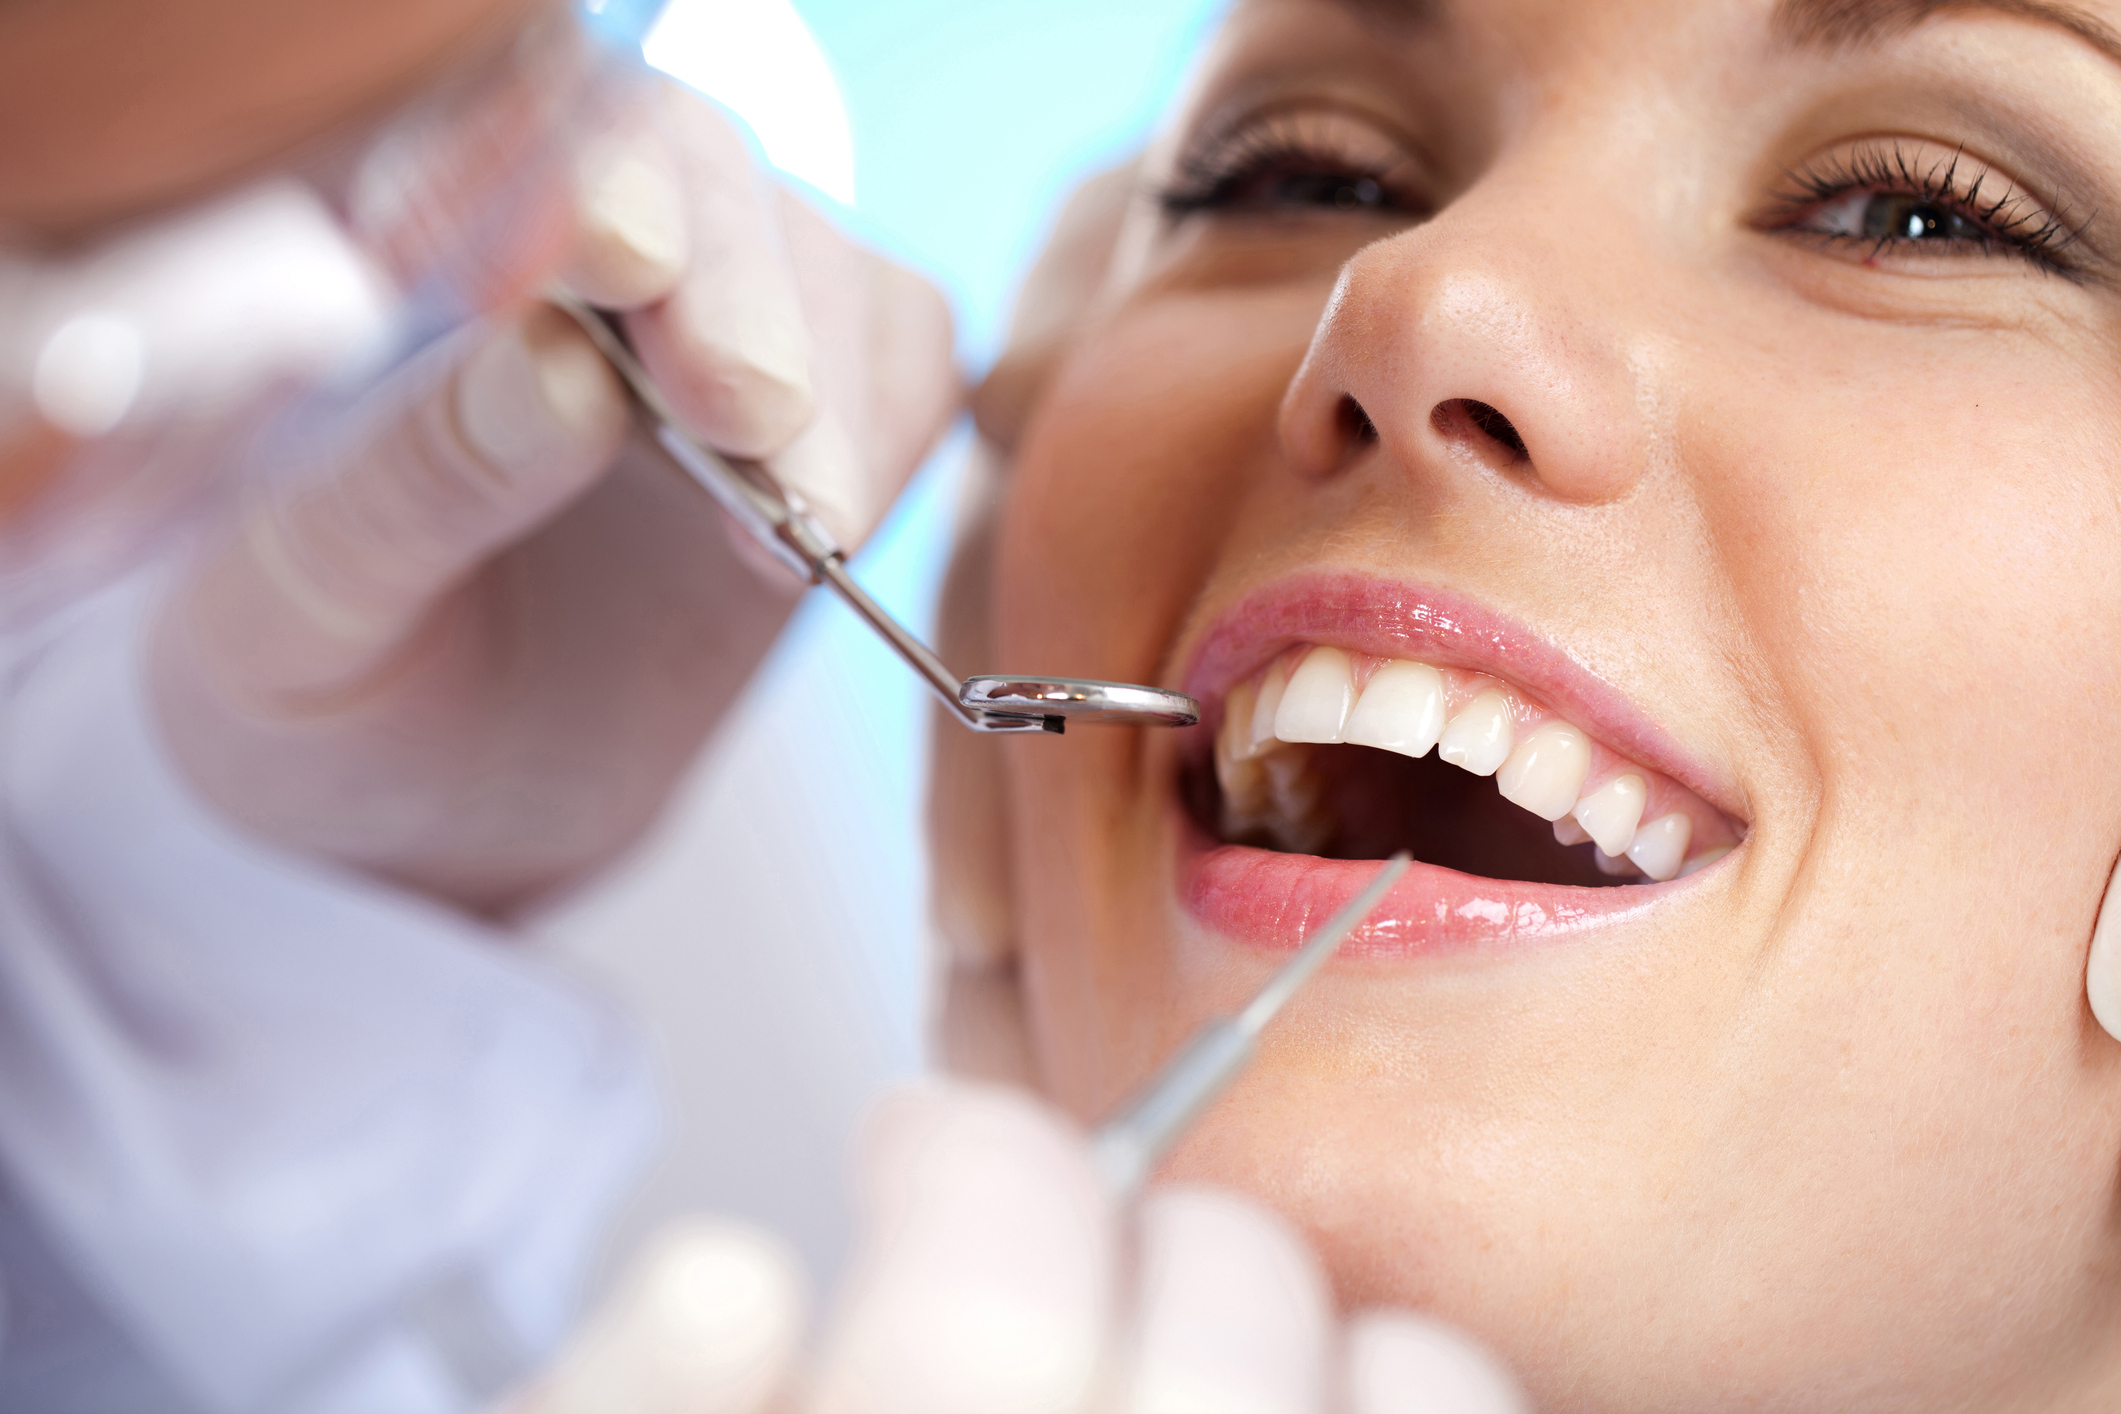 examination and treatment of the teeth in the dental clinic